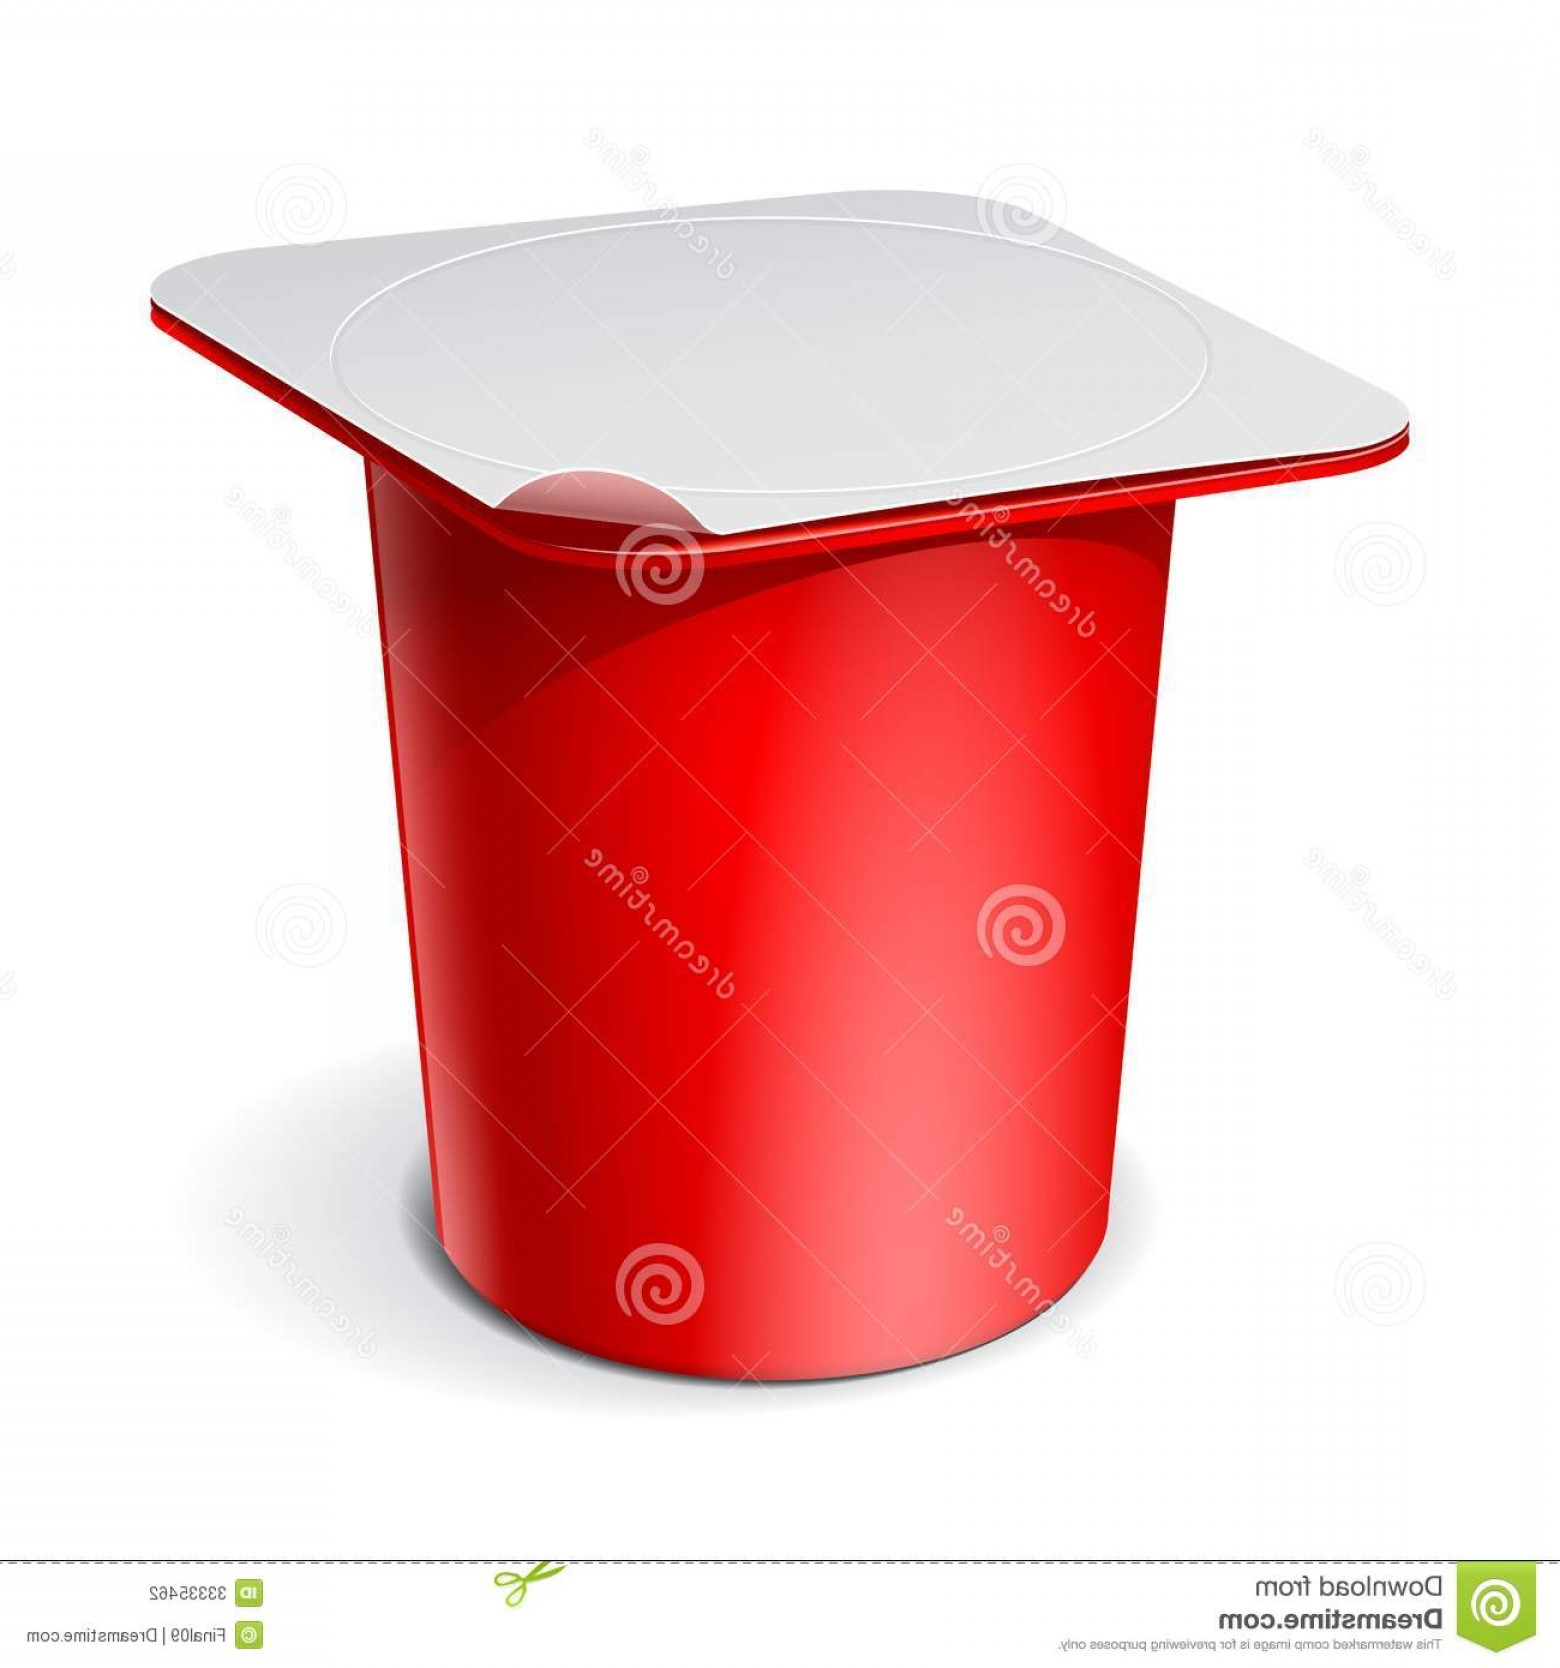 Yogurt Vector: Stock Photography Red Realistic Plastic Container Yogurt Vector Blank Jams Other Products Illustration Image